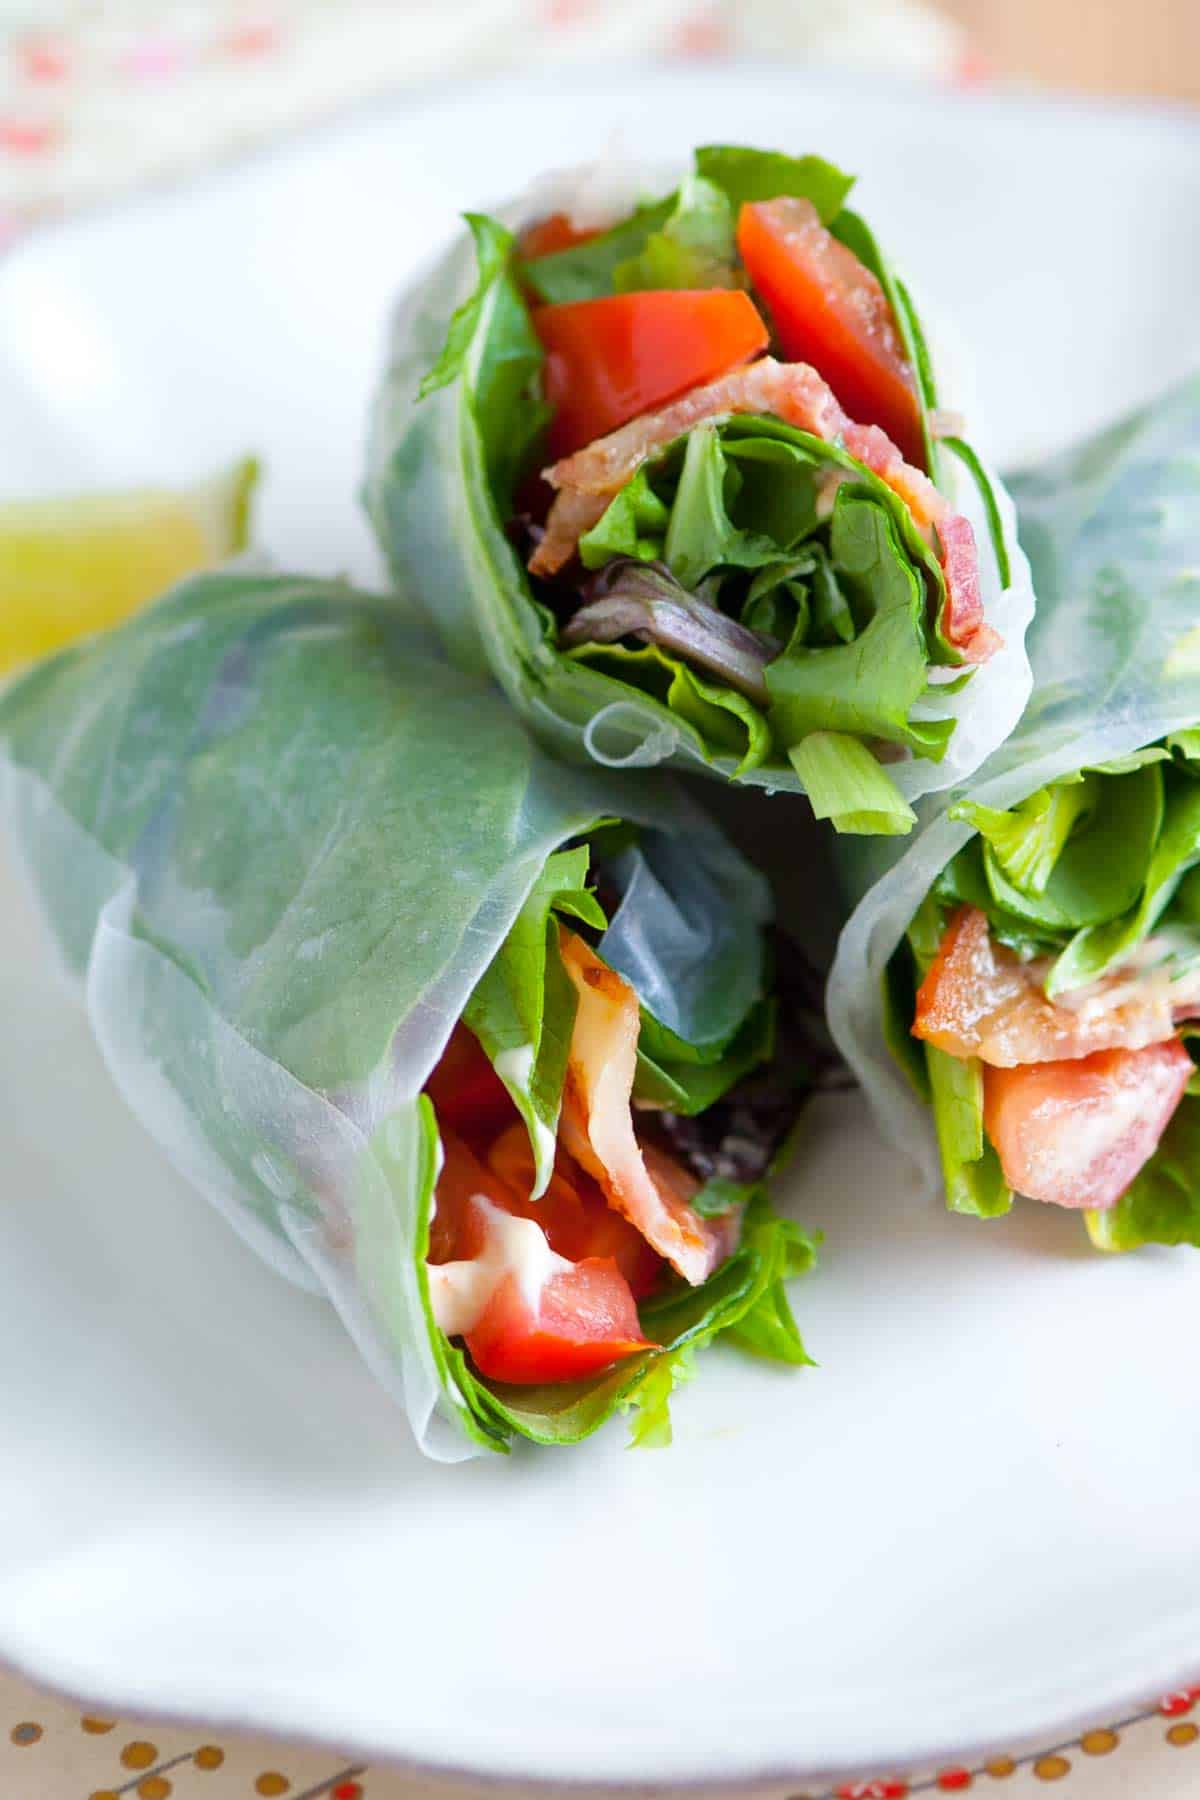 How to Make Summer Rolls with Bacon, Lettuce and Tomato